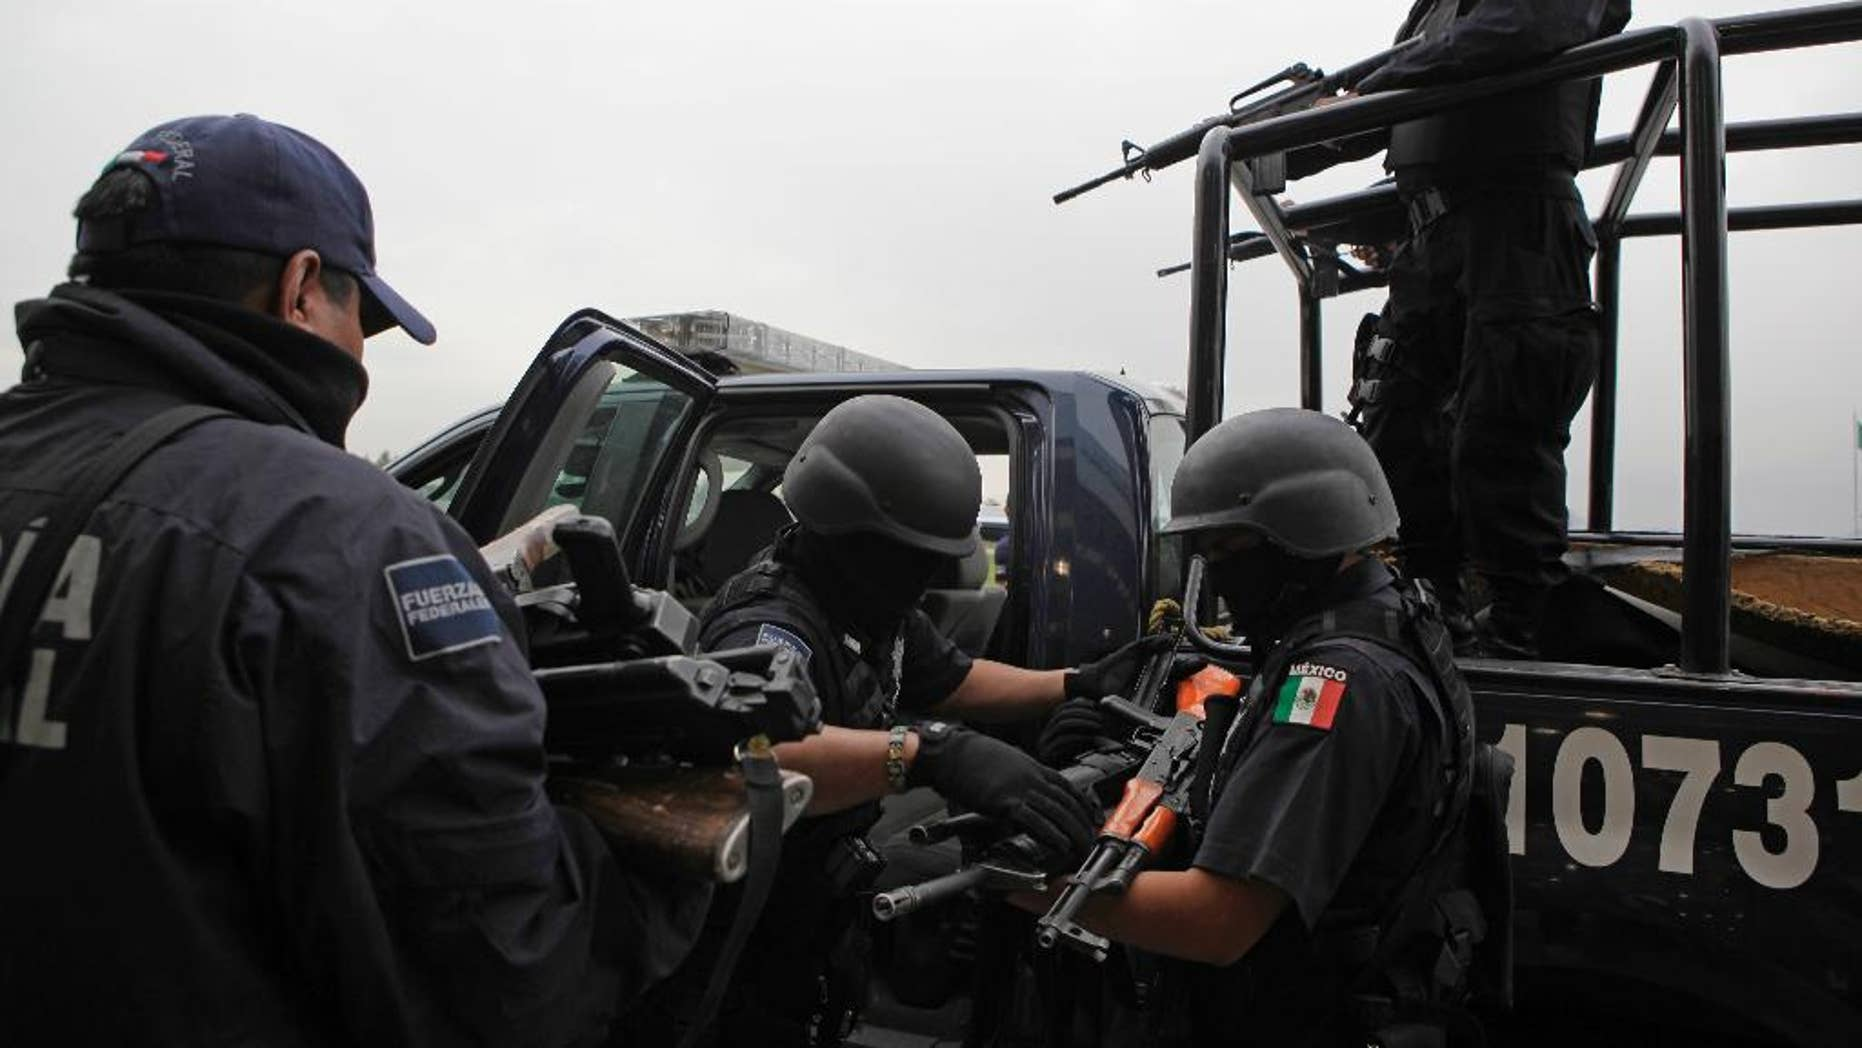 FILE - In this June 26, 2009 file photo, seized weapons from alleged members of the Beltran Leyva drug cartel are taken away by federal agents after a press conference in Mexico City. In a major embarrassment for Mexican law enforcement, U.S. prosecutors said in documents made public Wednesday, April 6, 2017, that Ivan Reyes Arzate, the commander of the Mexican police's intelligence-sharing unit, was passing information to the Beltran Leyva drug cartel in exchange for cash. (AP Photo/Alexandre Meneghini, File)